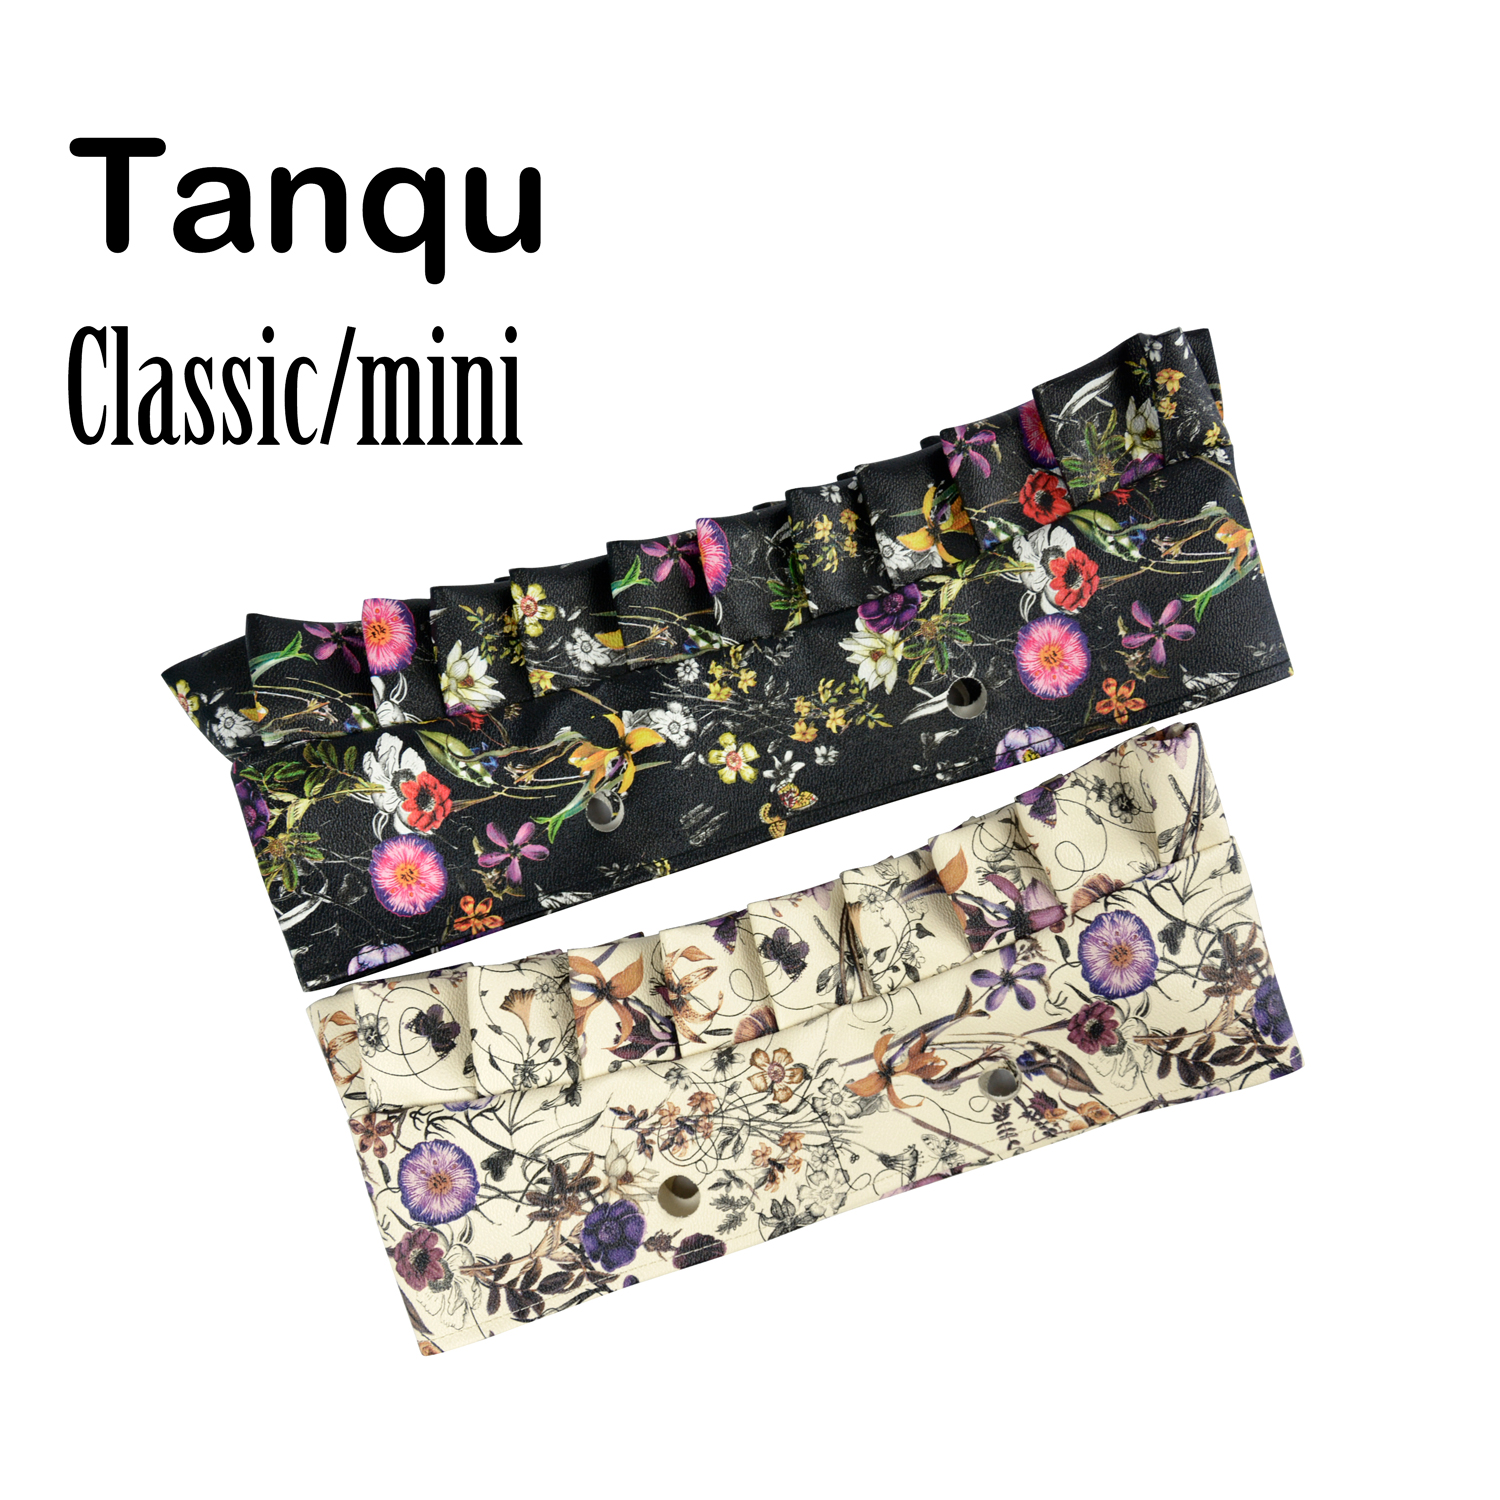 Tanqu Classic Mini Flounce Floral Leather PU Trim decoration with frill pleat for Obag O Bag Accessory